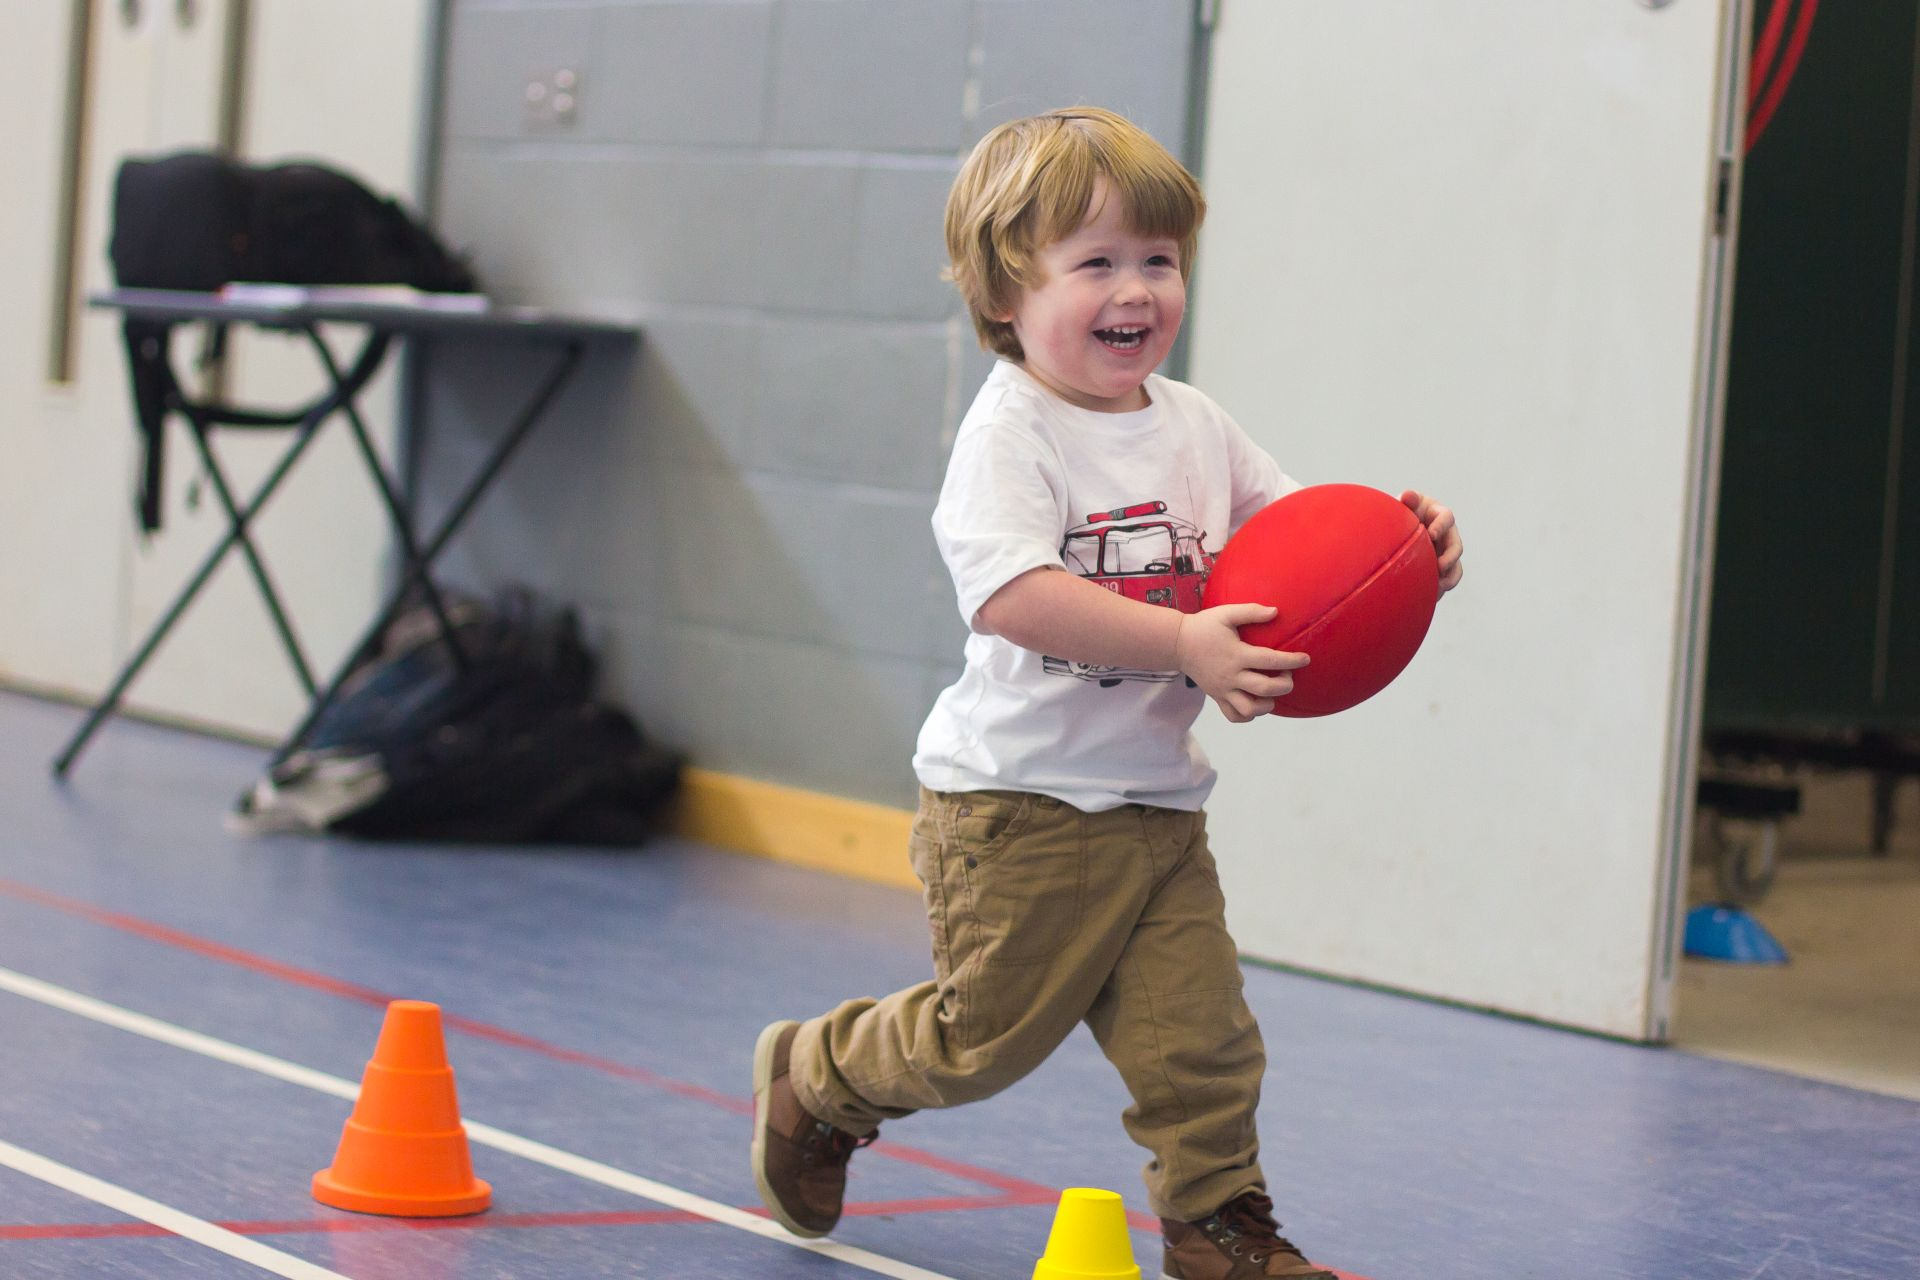 young boy running with red rubgy ball